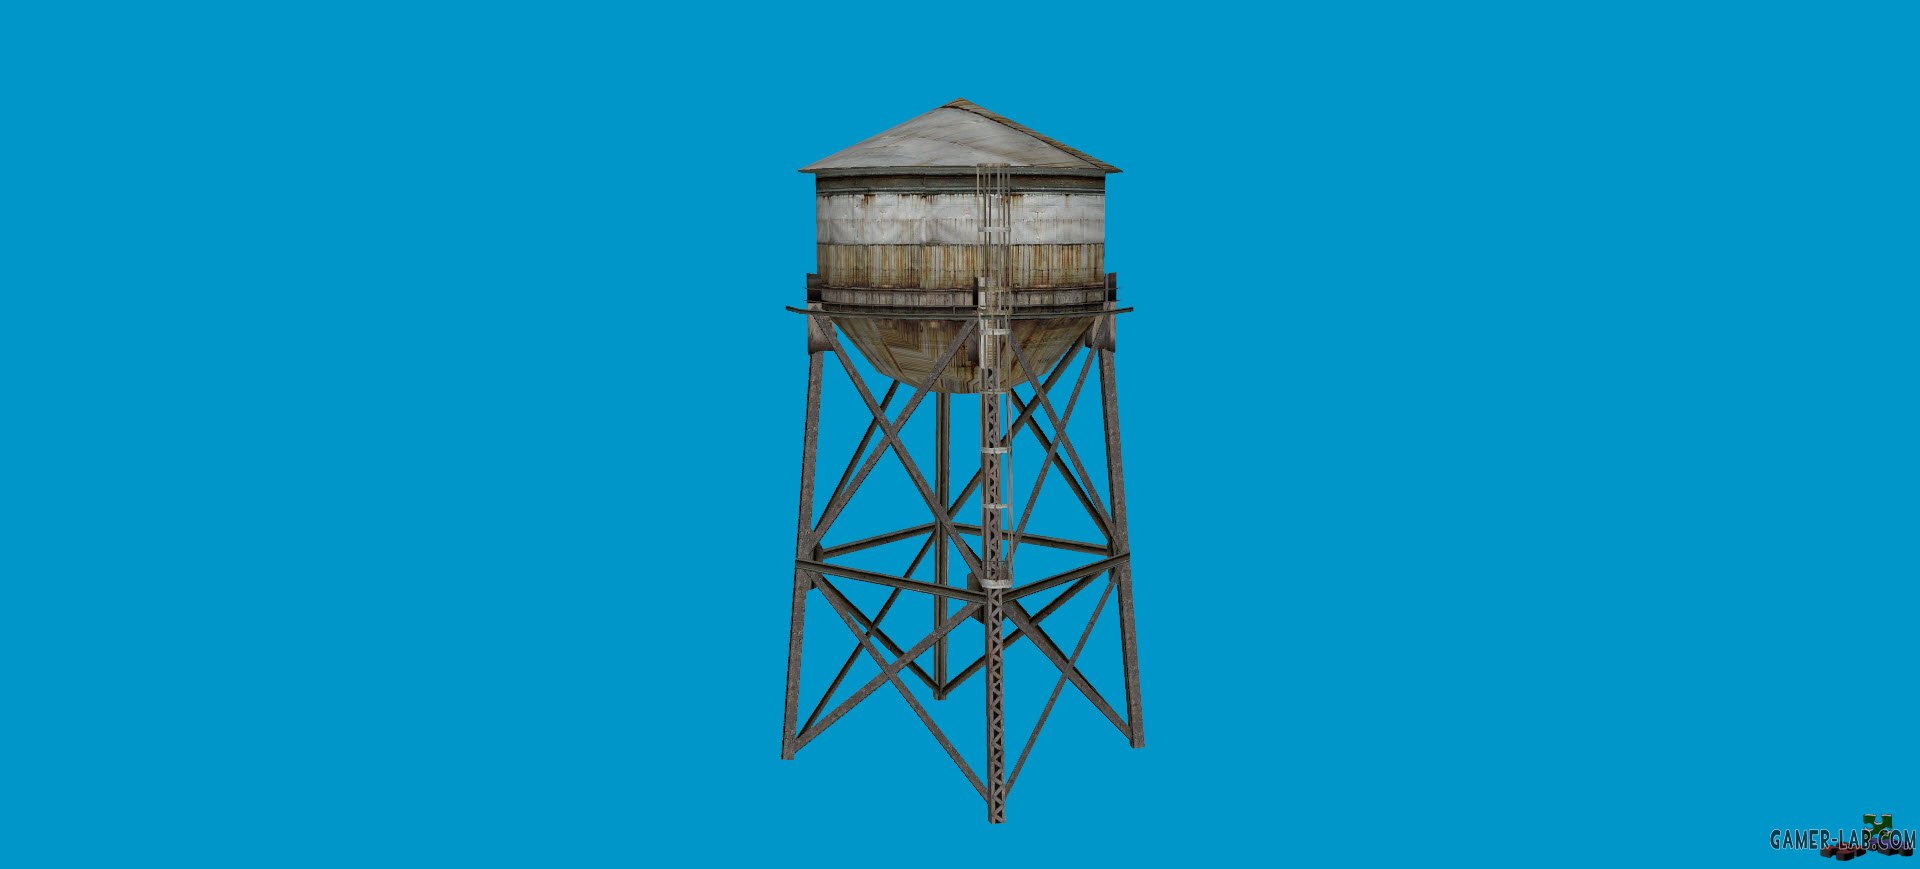 prop watertowerskybox